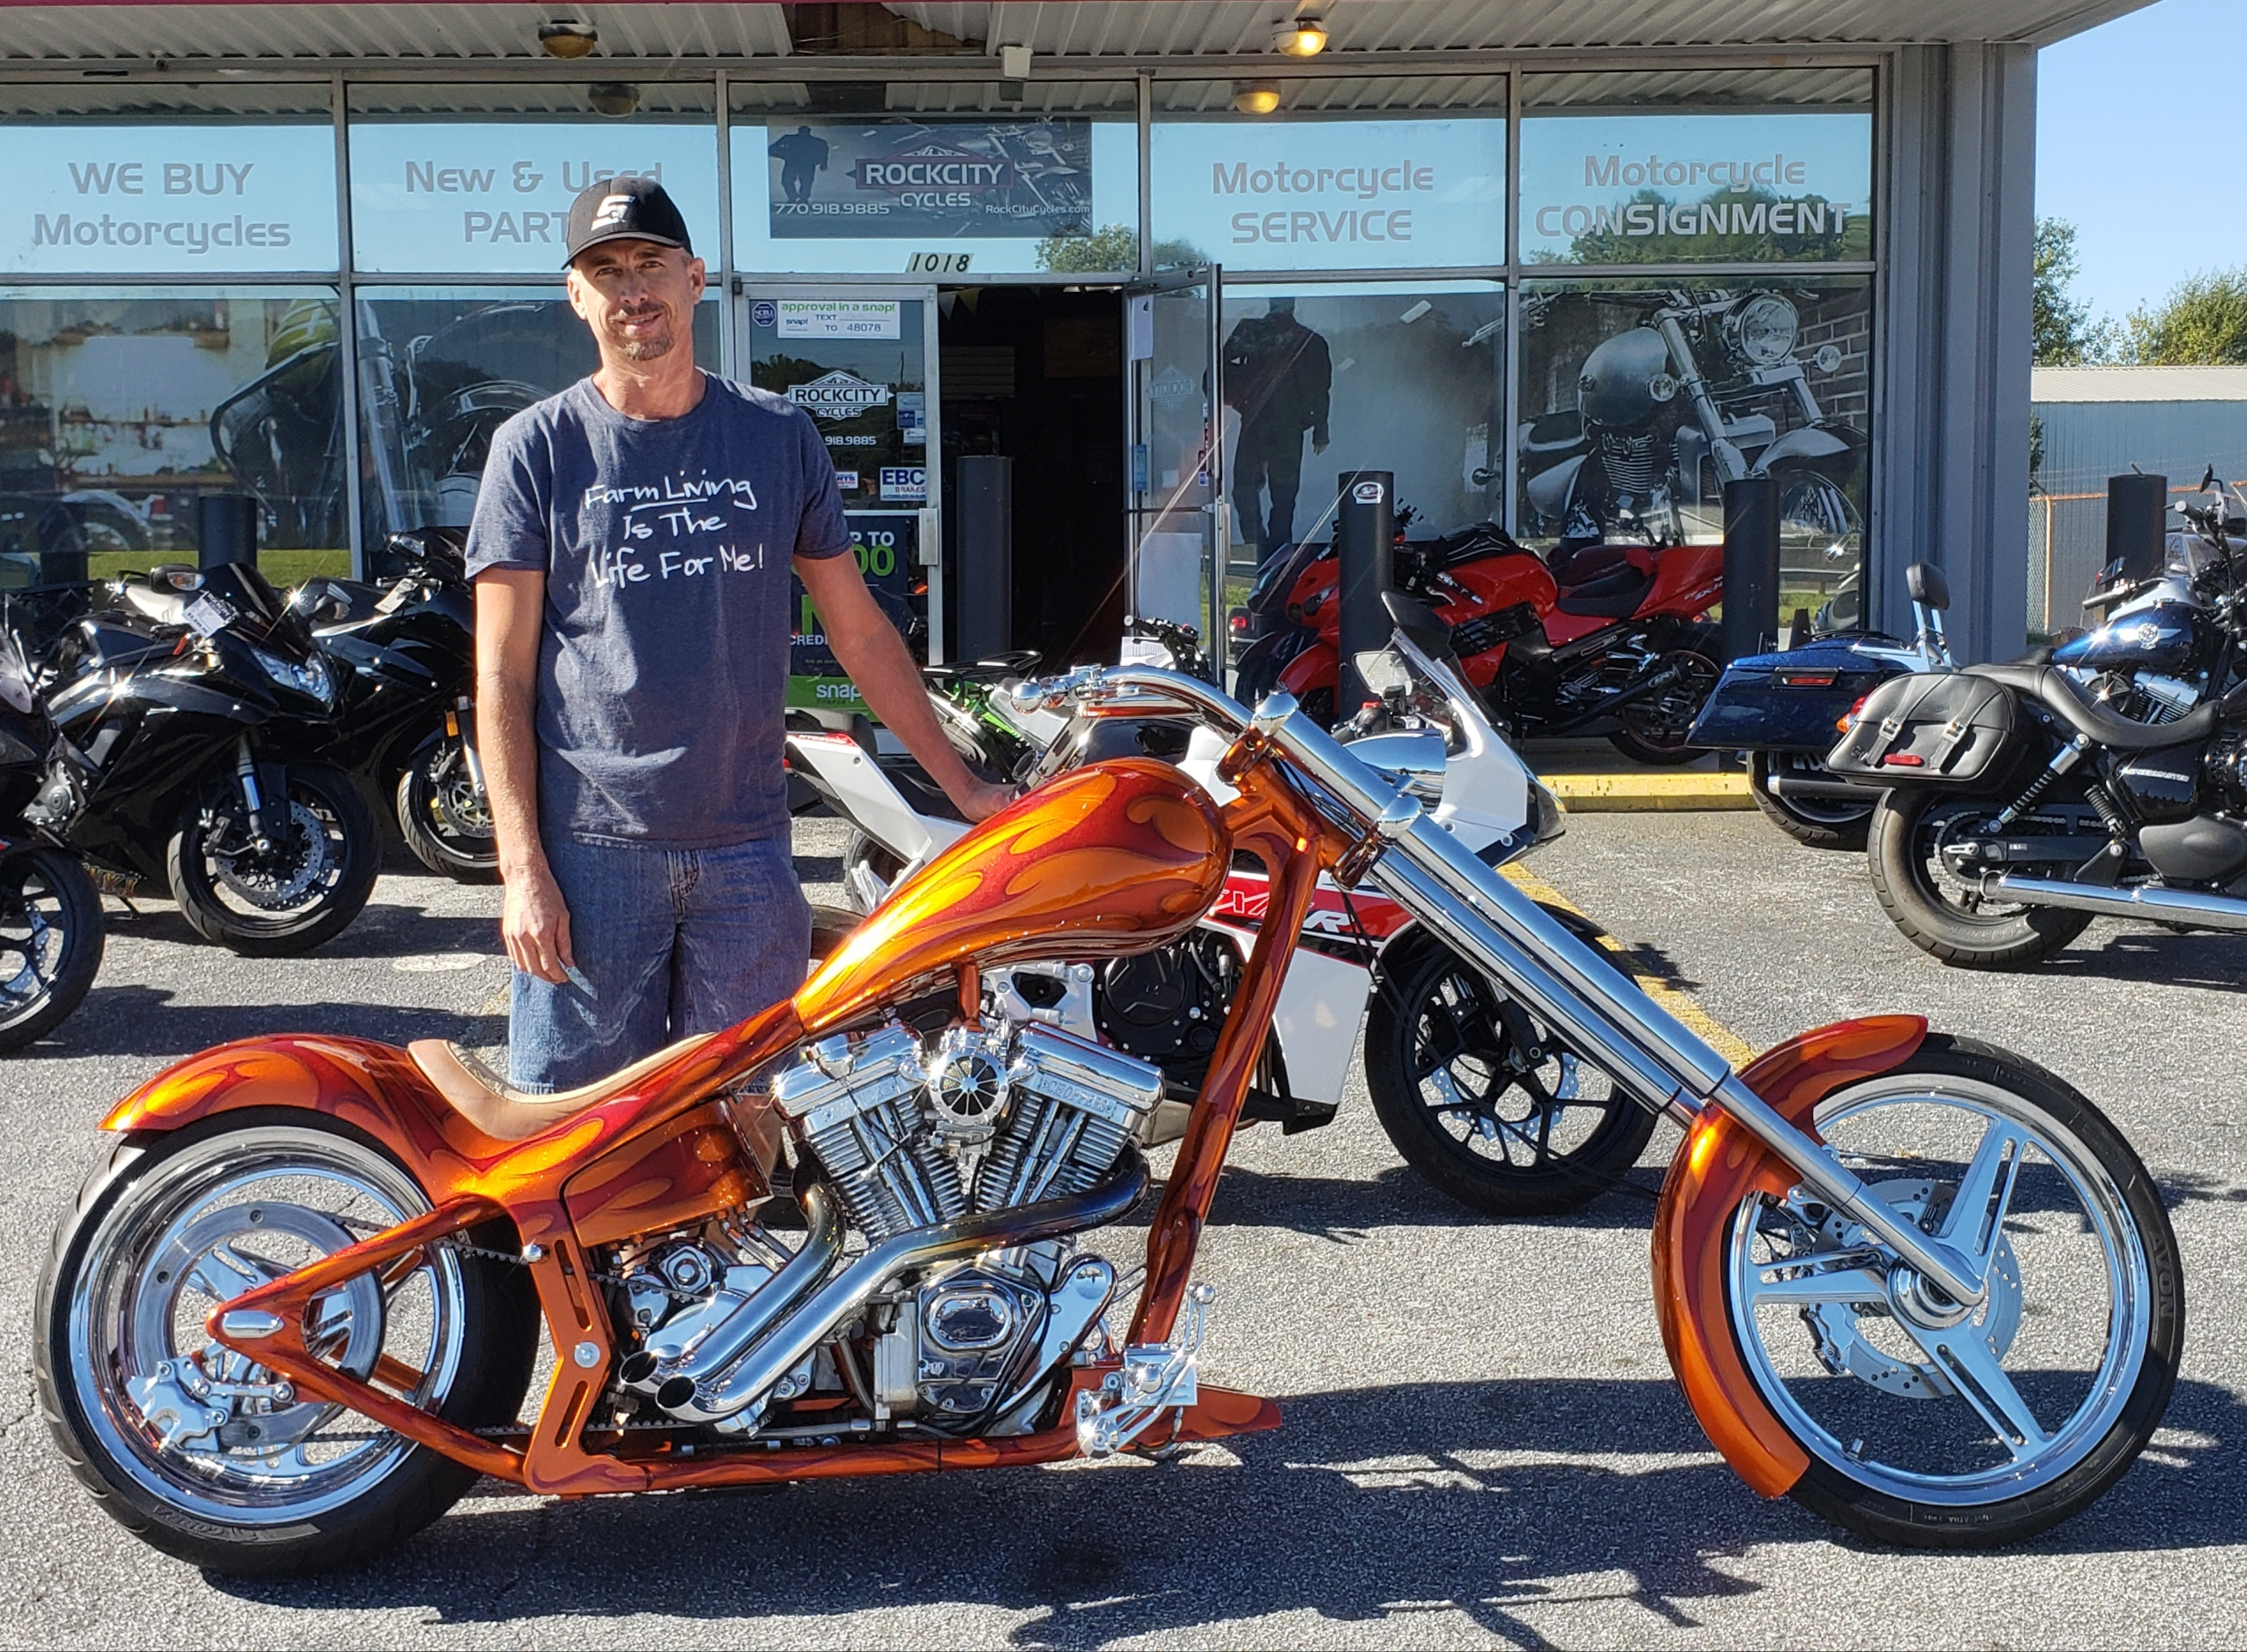 Earnest B. with his 2003 Thunder Cycle Eddie Trotta Drop Seat Softail